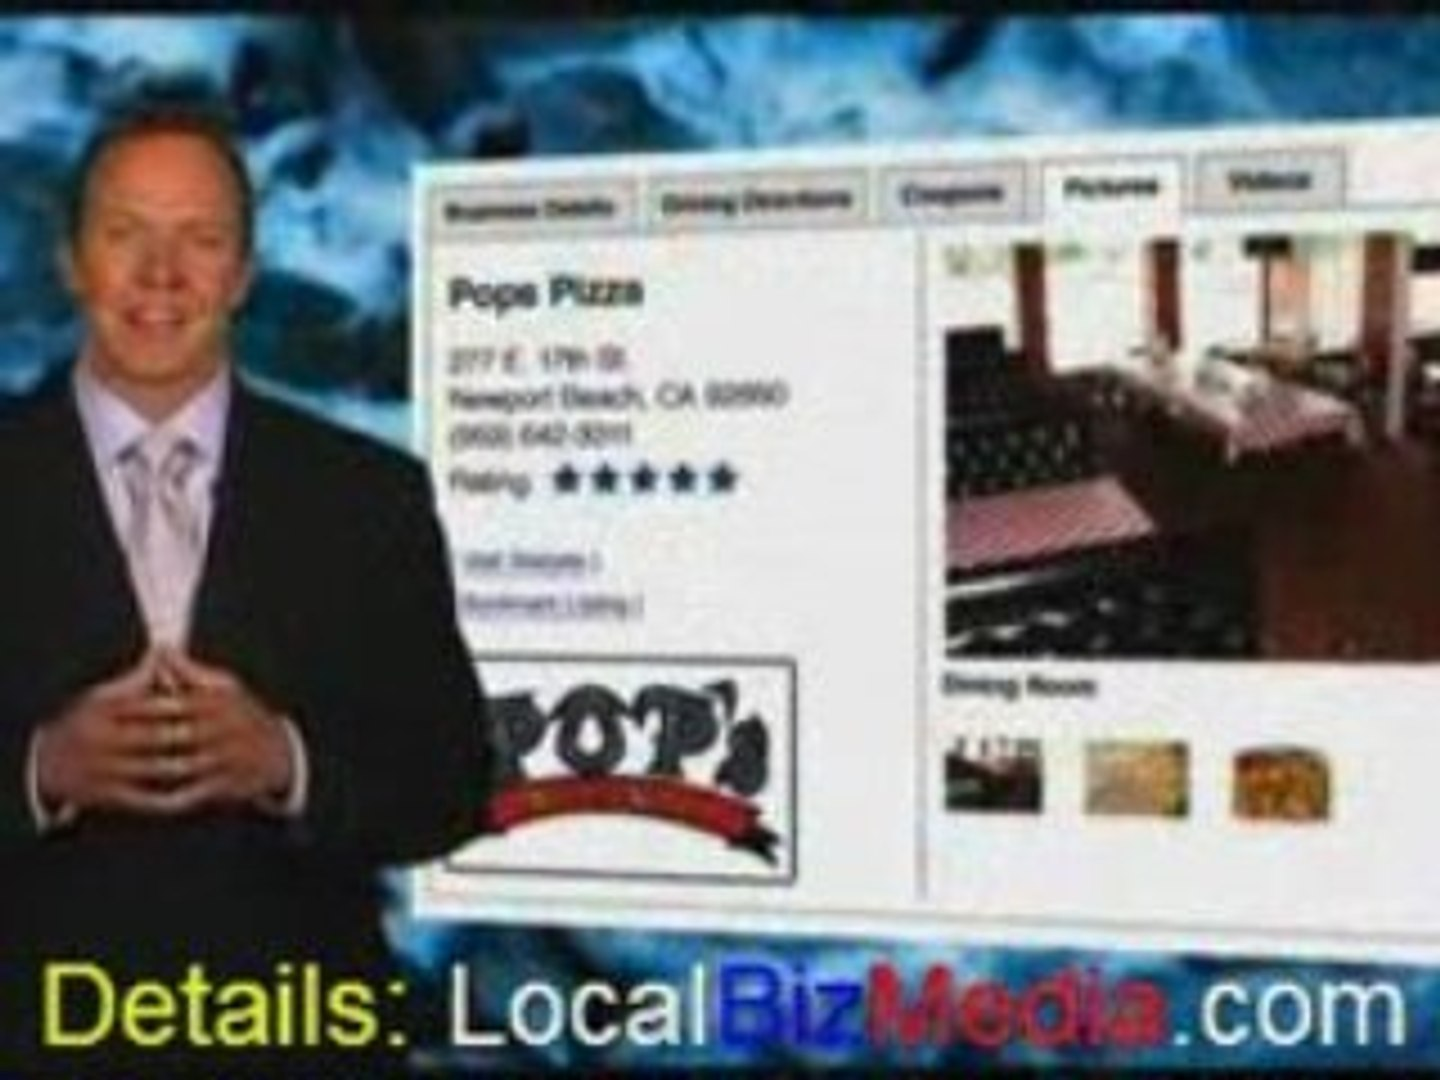 Advertising Media for Local Merchants based upon Zip Codes